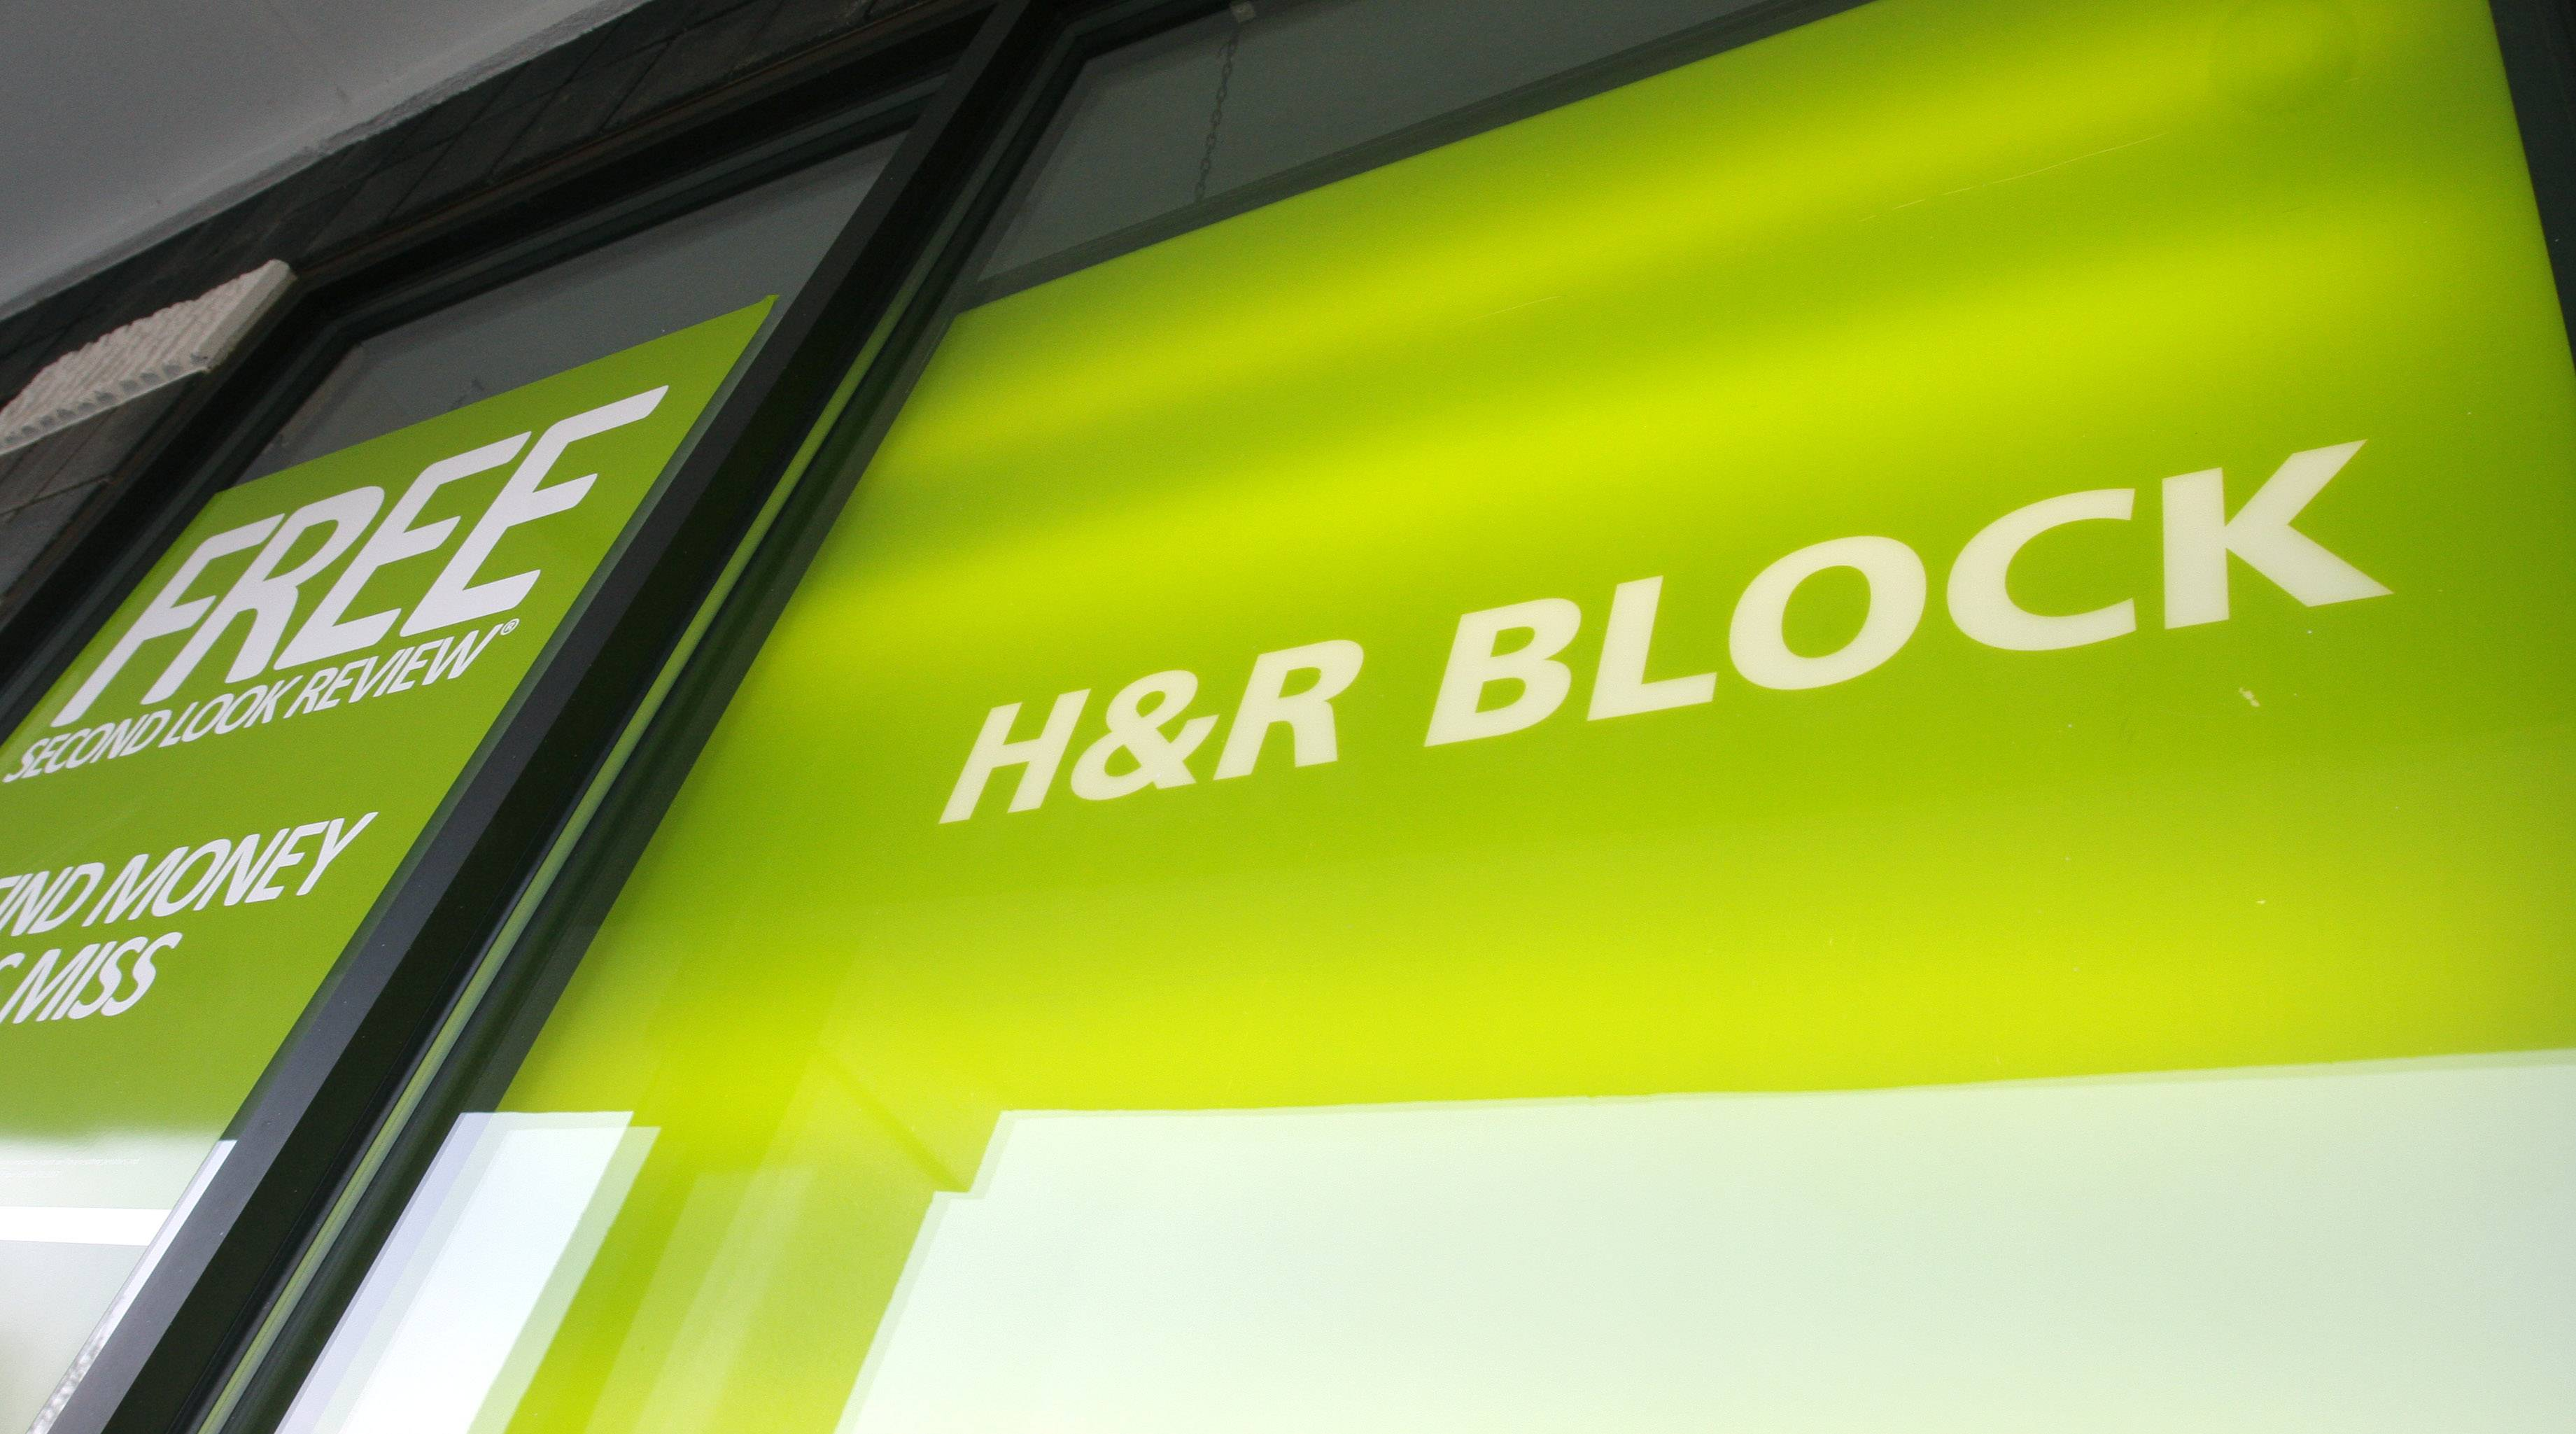 H&R Block Inc. on Wednesday posted a net loss for its fiscal third quarter, but offered positive data on the first part of tax season.